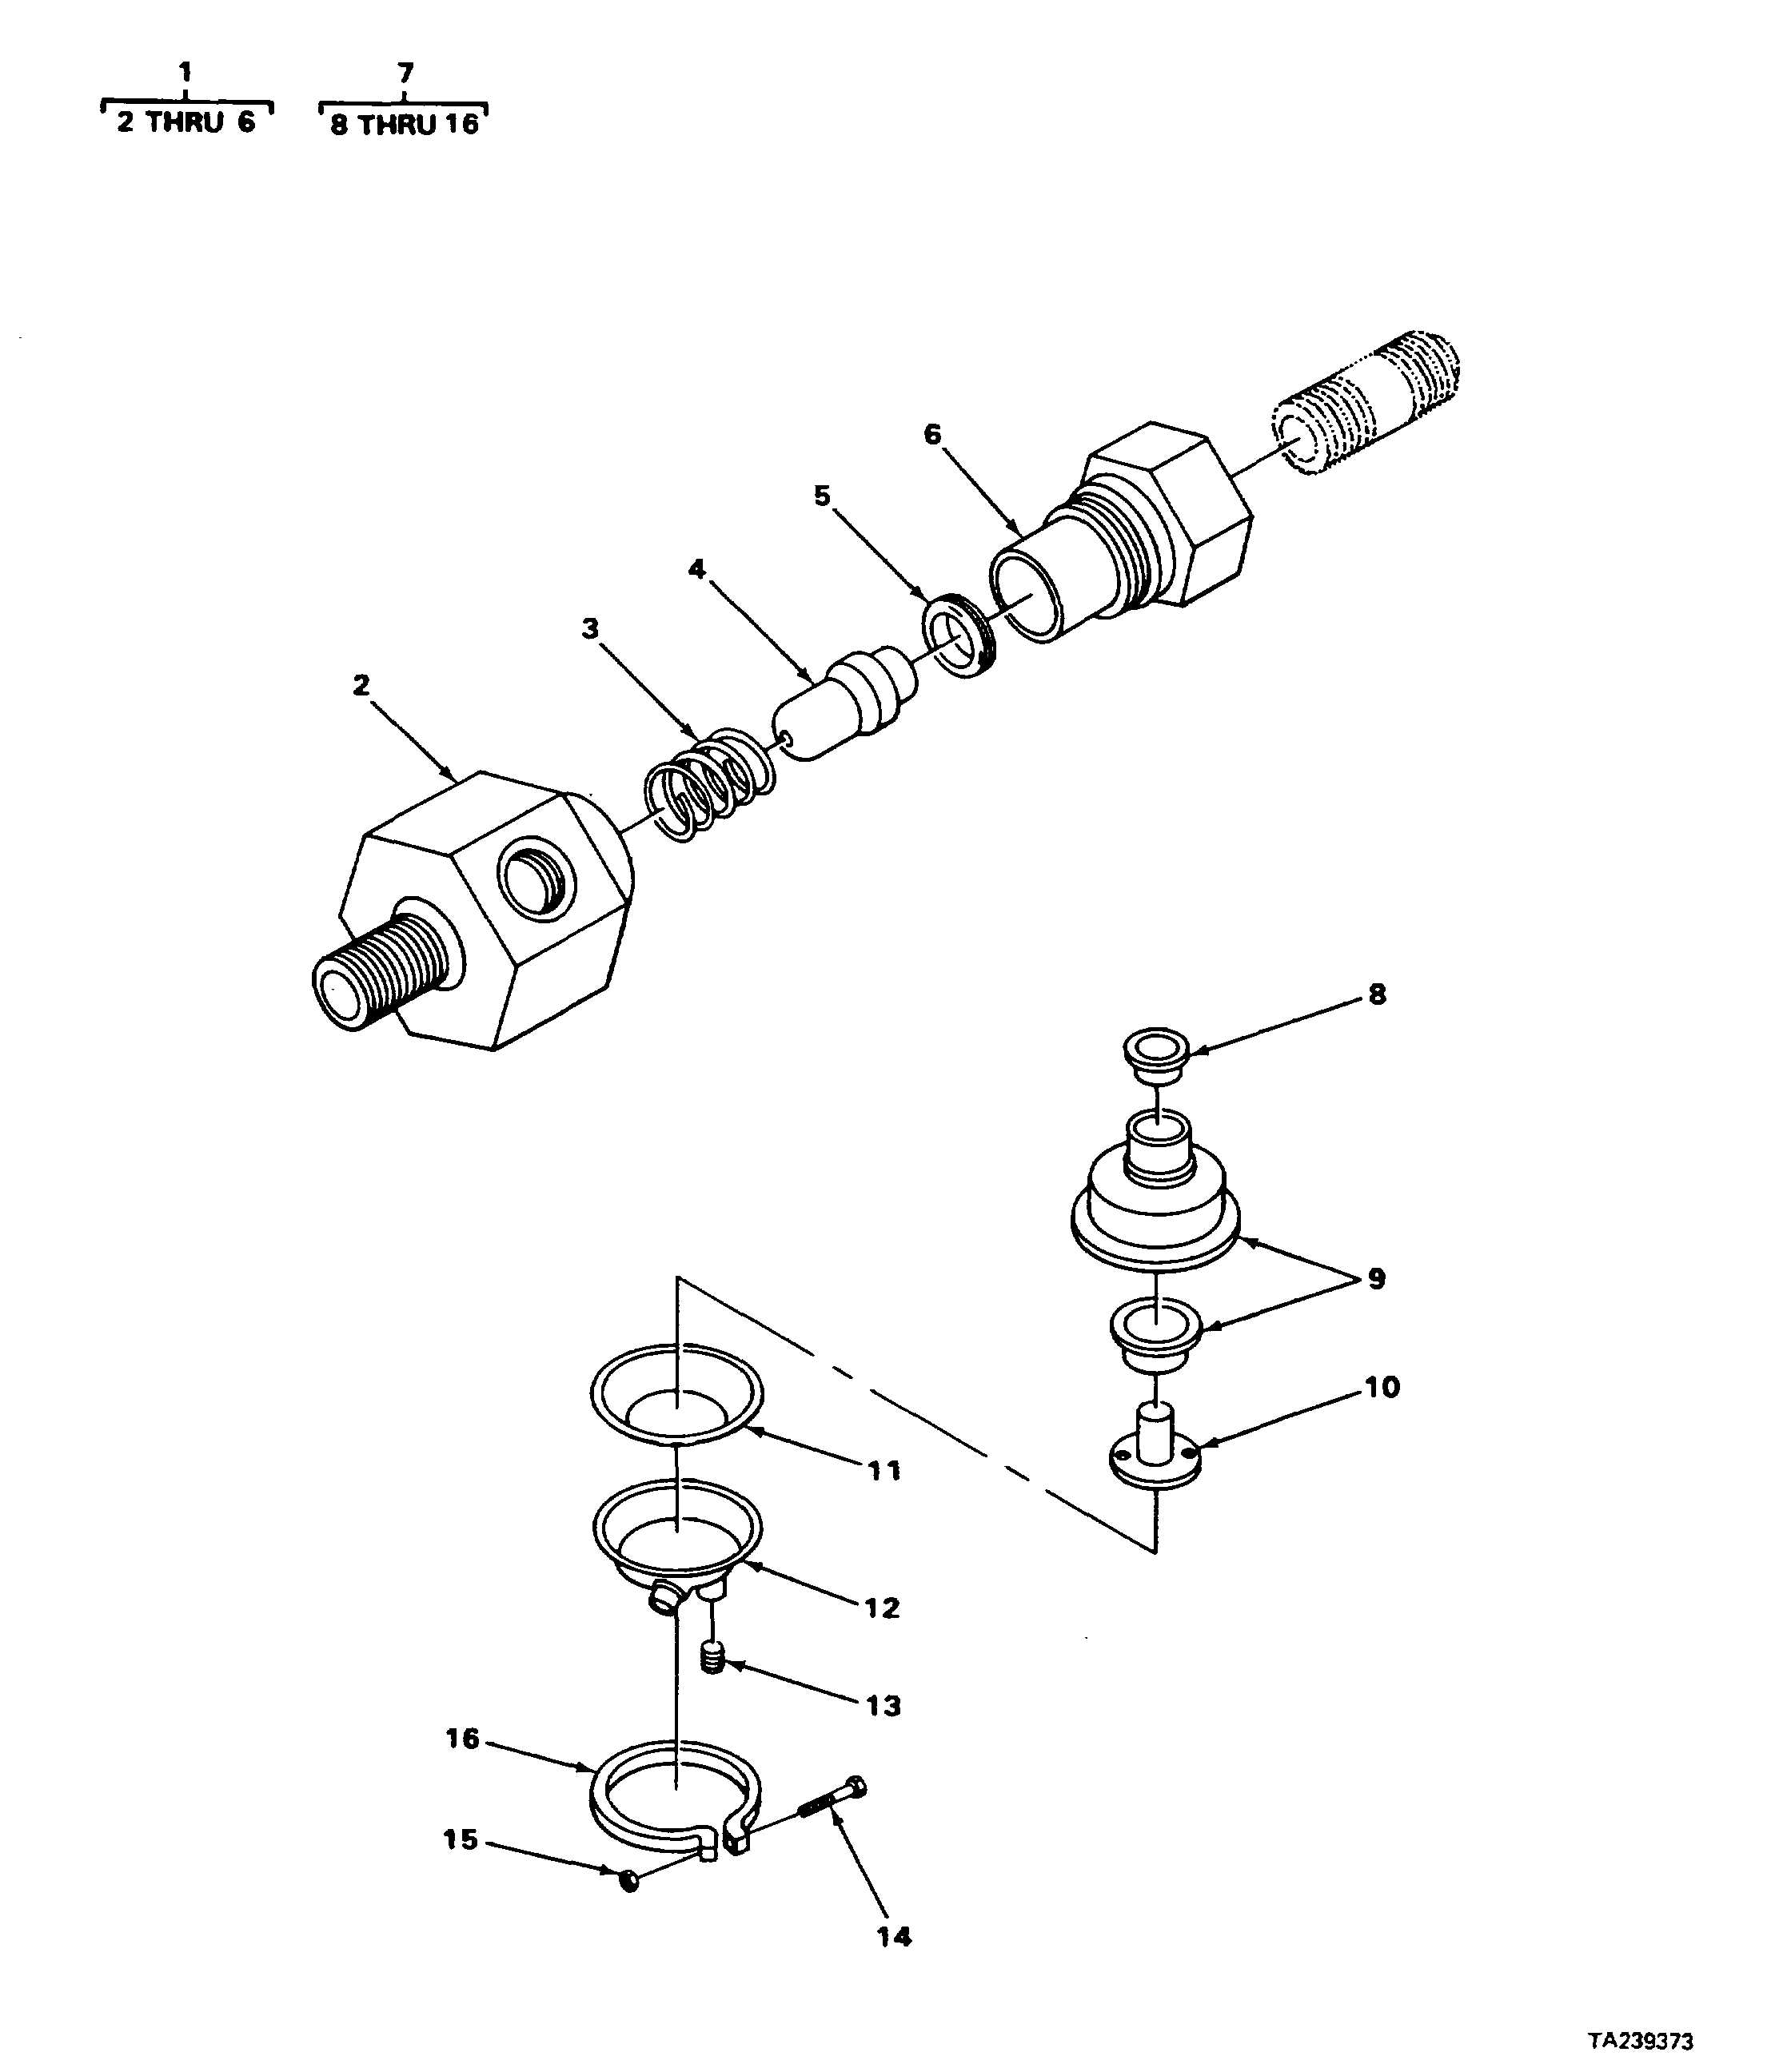 FIGURE 120. CHECK VALVE (ALCOHOL EVAPORATOR) AND AIR BRAKE